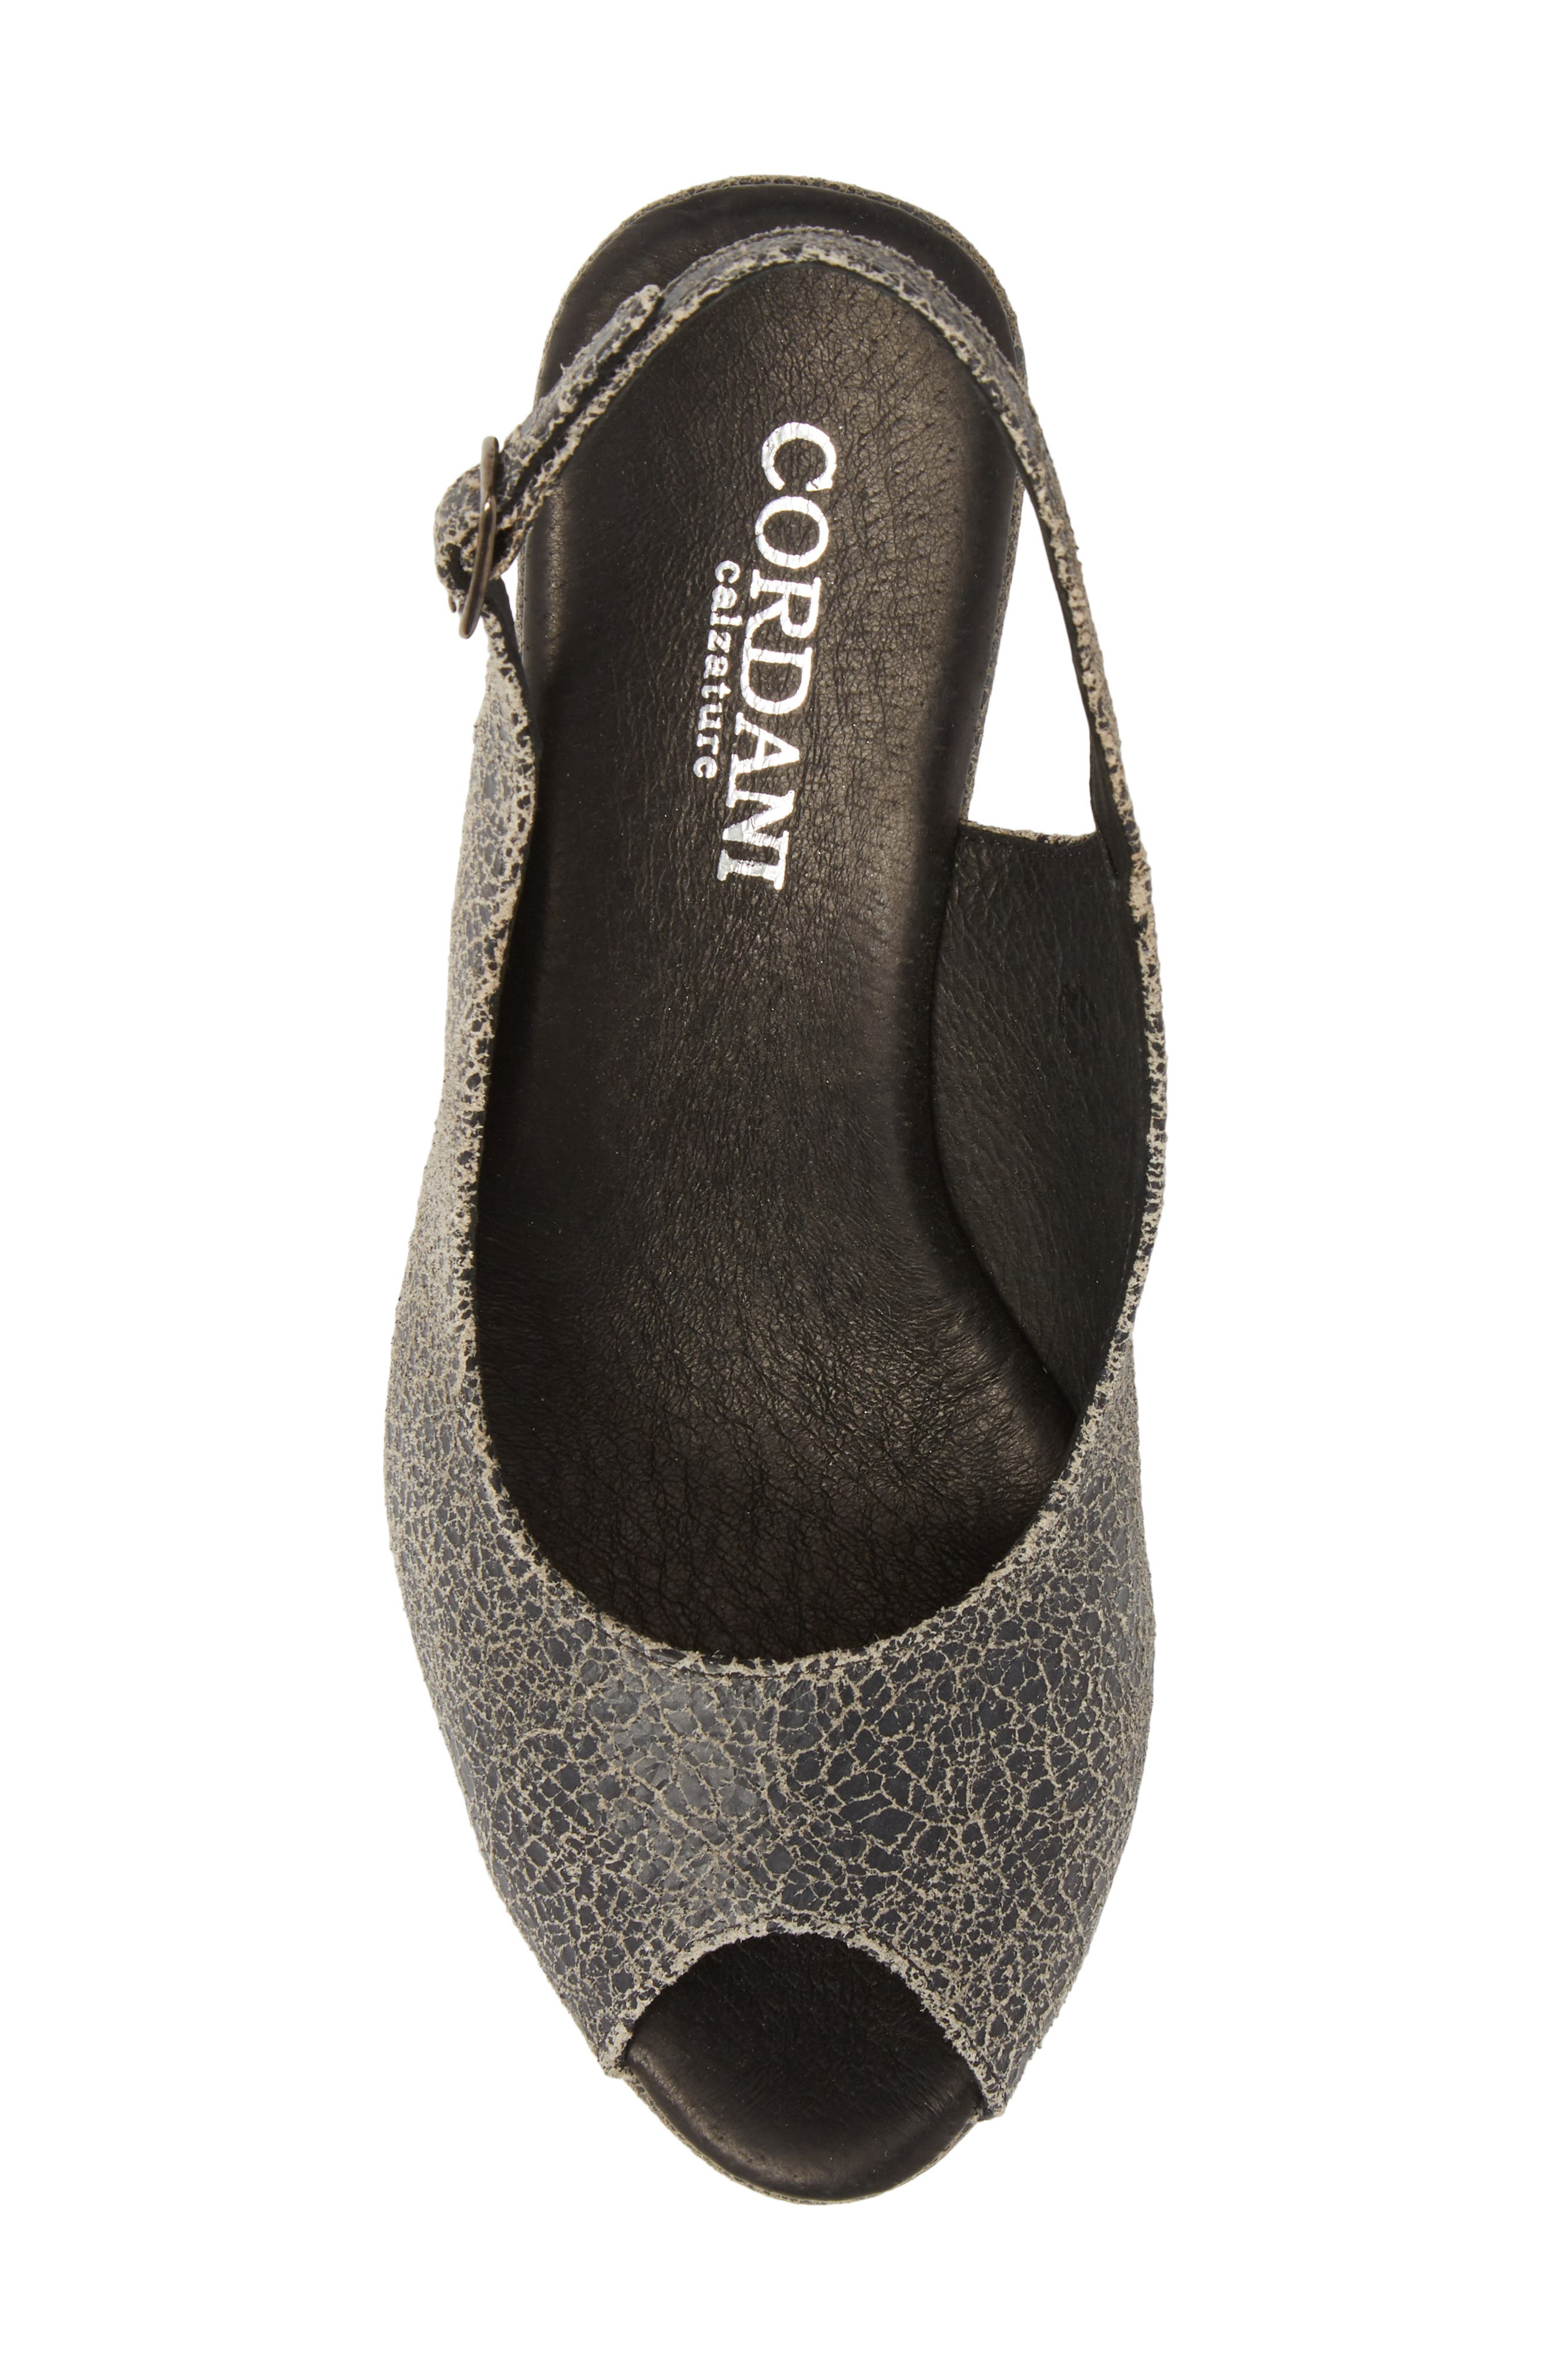 Fabrice Slingback Platform Sandal,                             Alternate thumbnail 5, color,                             GREY CRACKLE LEATHER